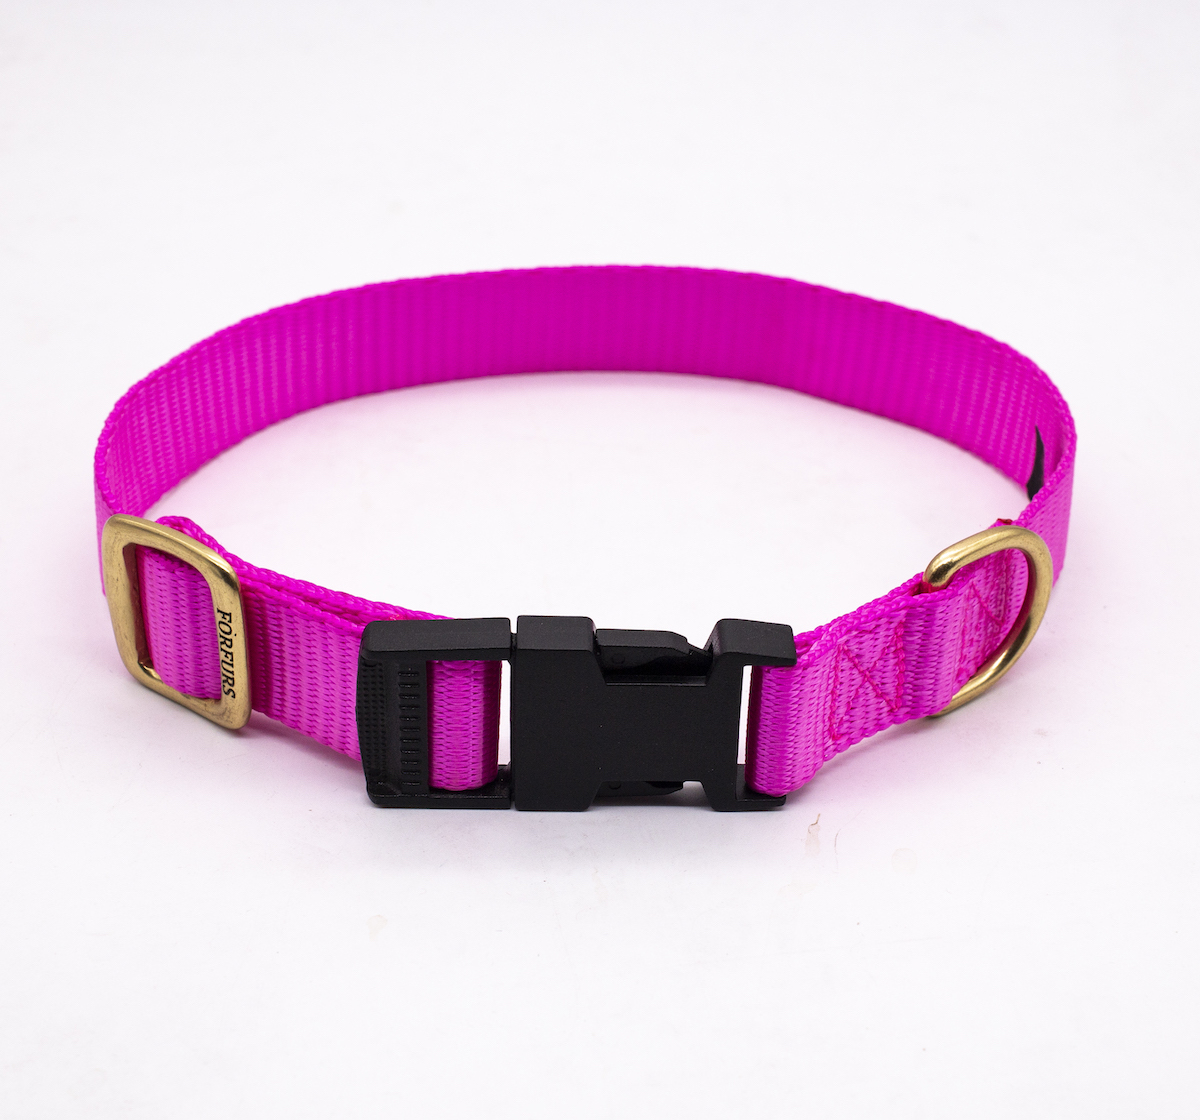 Forfurs Adjustable Classic Dog Collar Hot Pink - Small